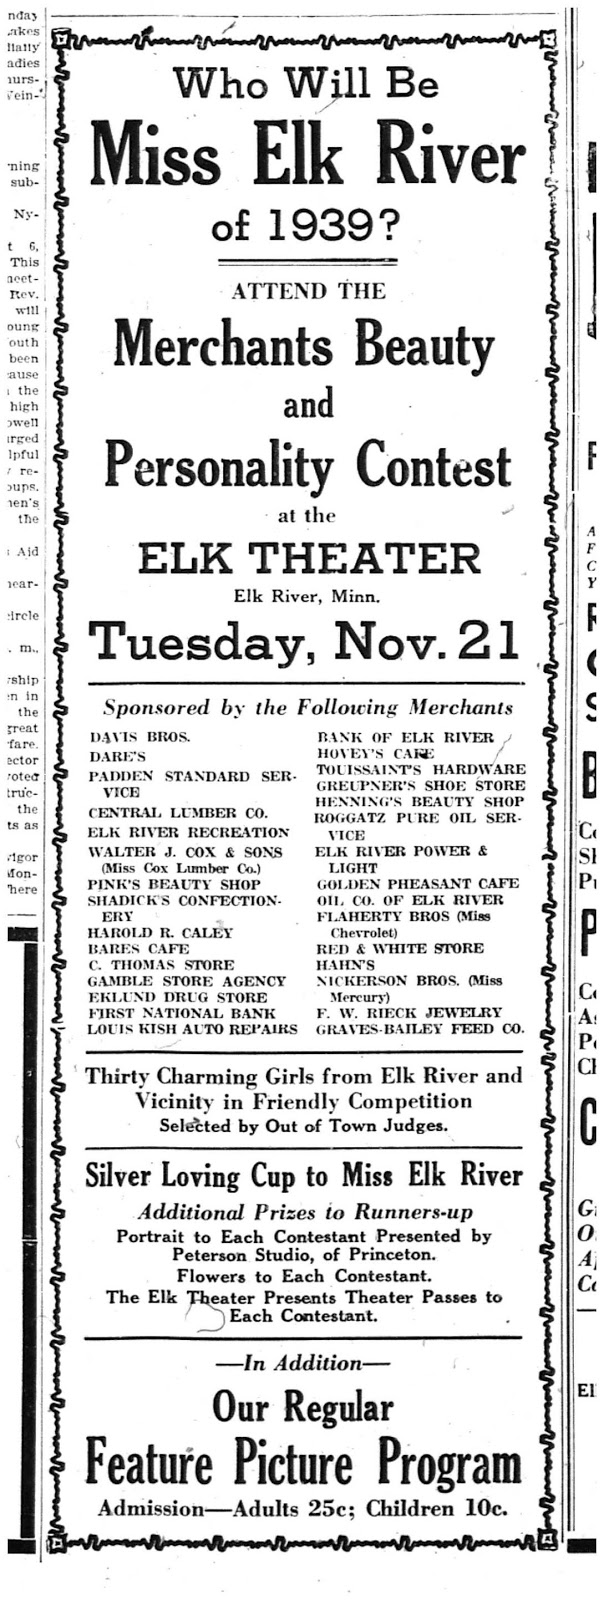 beauty contests have been the rage of popularity in the united states in 1939 while the country emerged from economic doldrums the miss elk river beauty